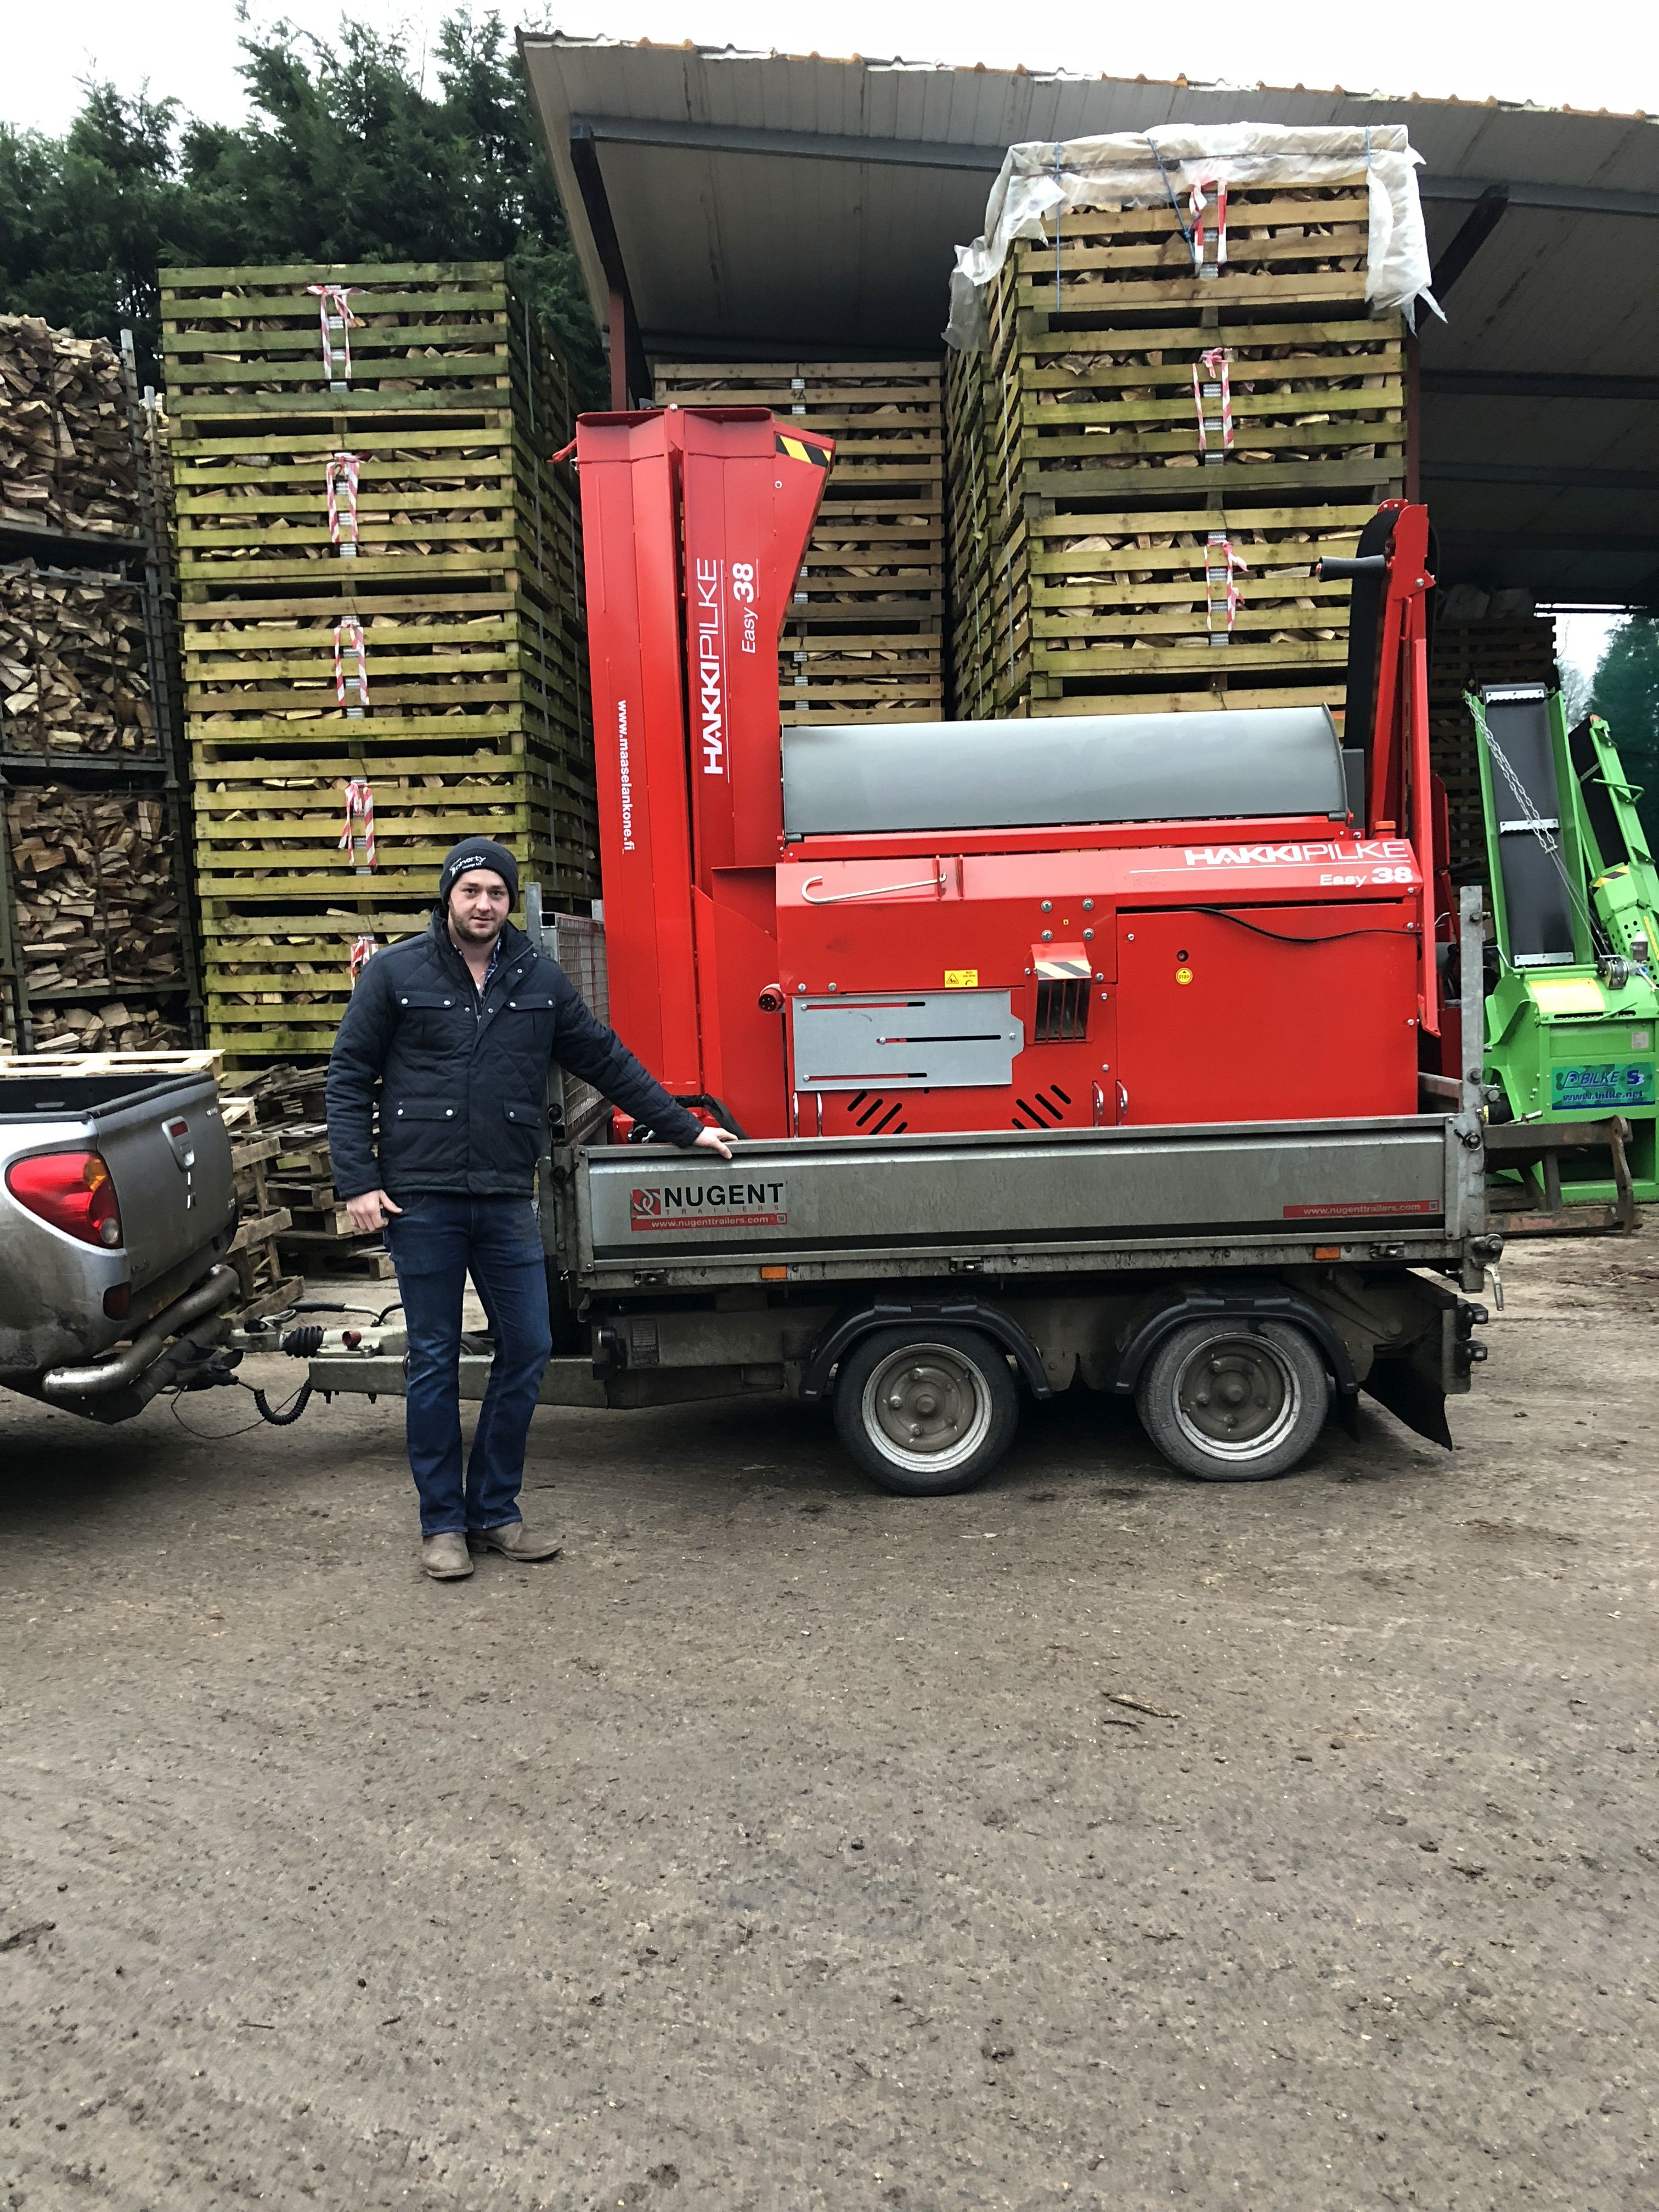 Ronan Travers from Michael Doherty Haulage, taking delivery of his new Hakki Pilke Easy 38 firewood processor - good luck and thank you for your custom... #hakkipilke #firewoodprocessor  Safe and happy cutting!  The Easy 38 firewood processor is an ergonomic powerhouse that can cut and split wood up to 38 cm in diameter. The electrically-operated splitting control mechanism and hydraulic saw ensure that smaller wood can be sawn and split considerably faster. Interested in a demo or quote?  📧cheryl@mlarge.com